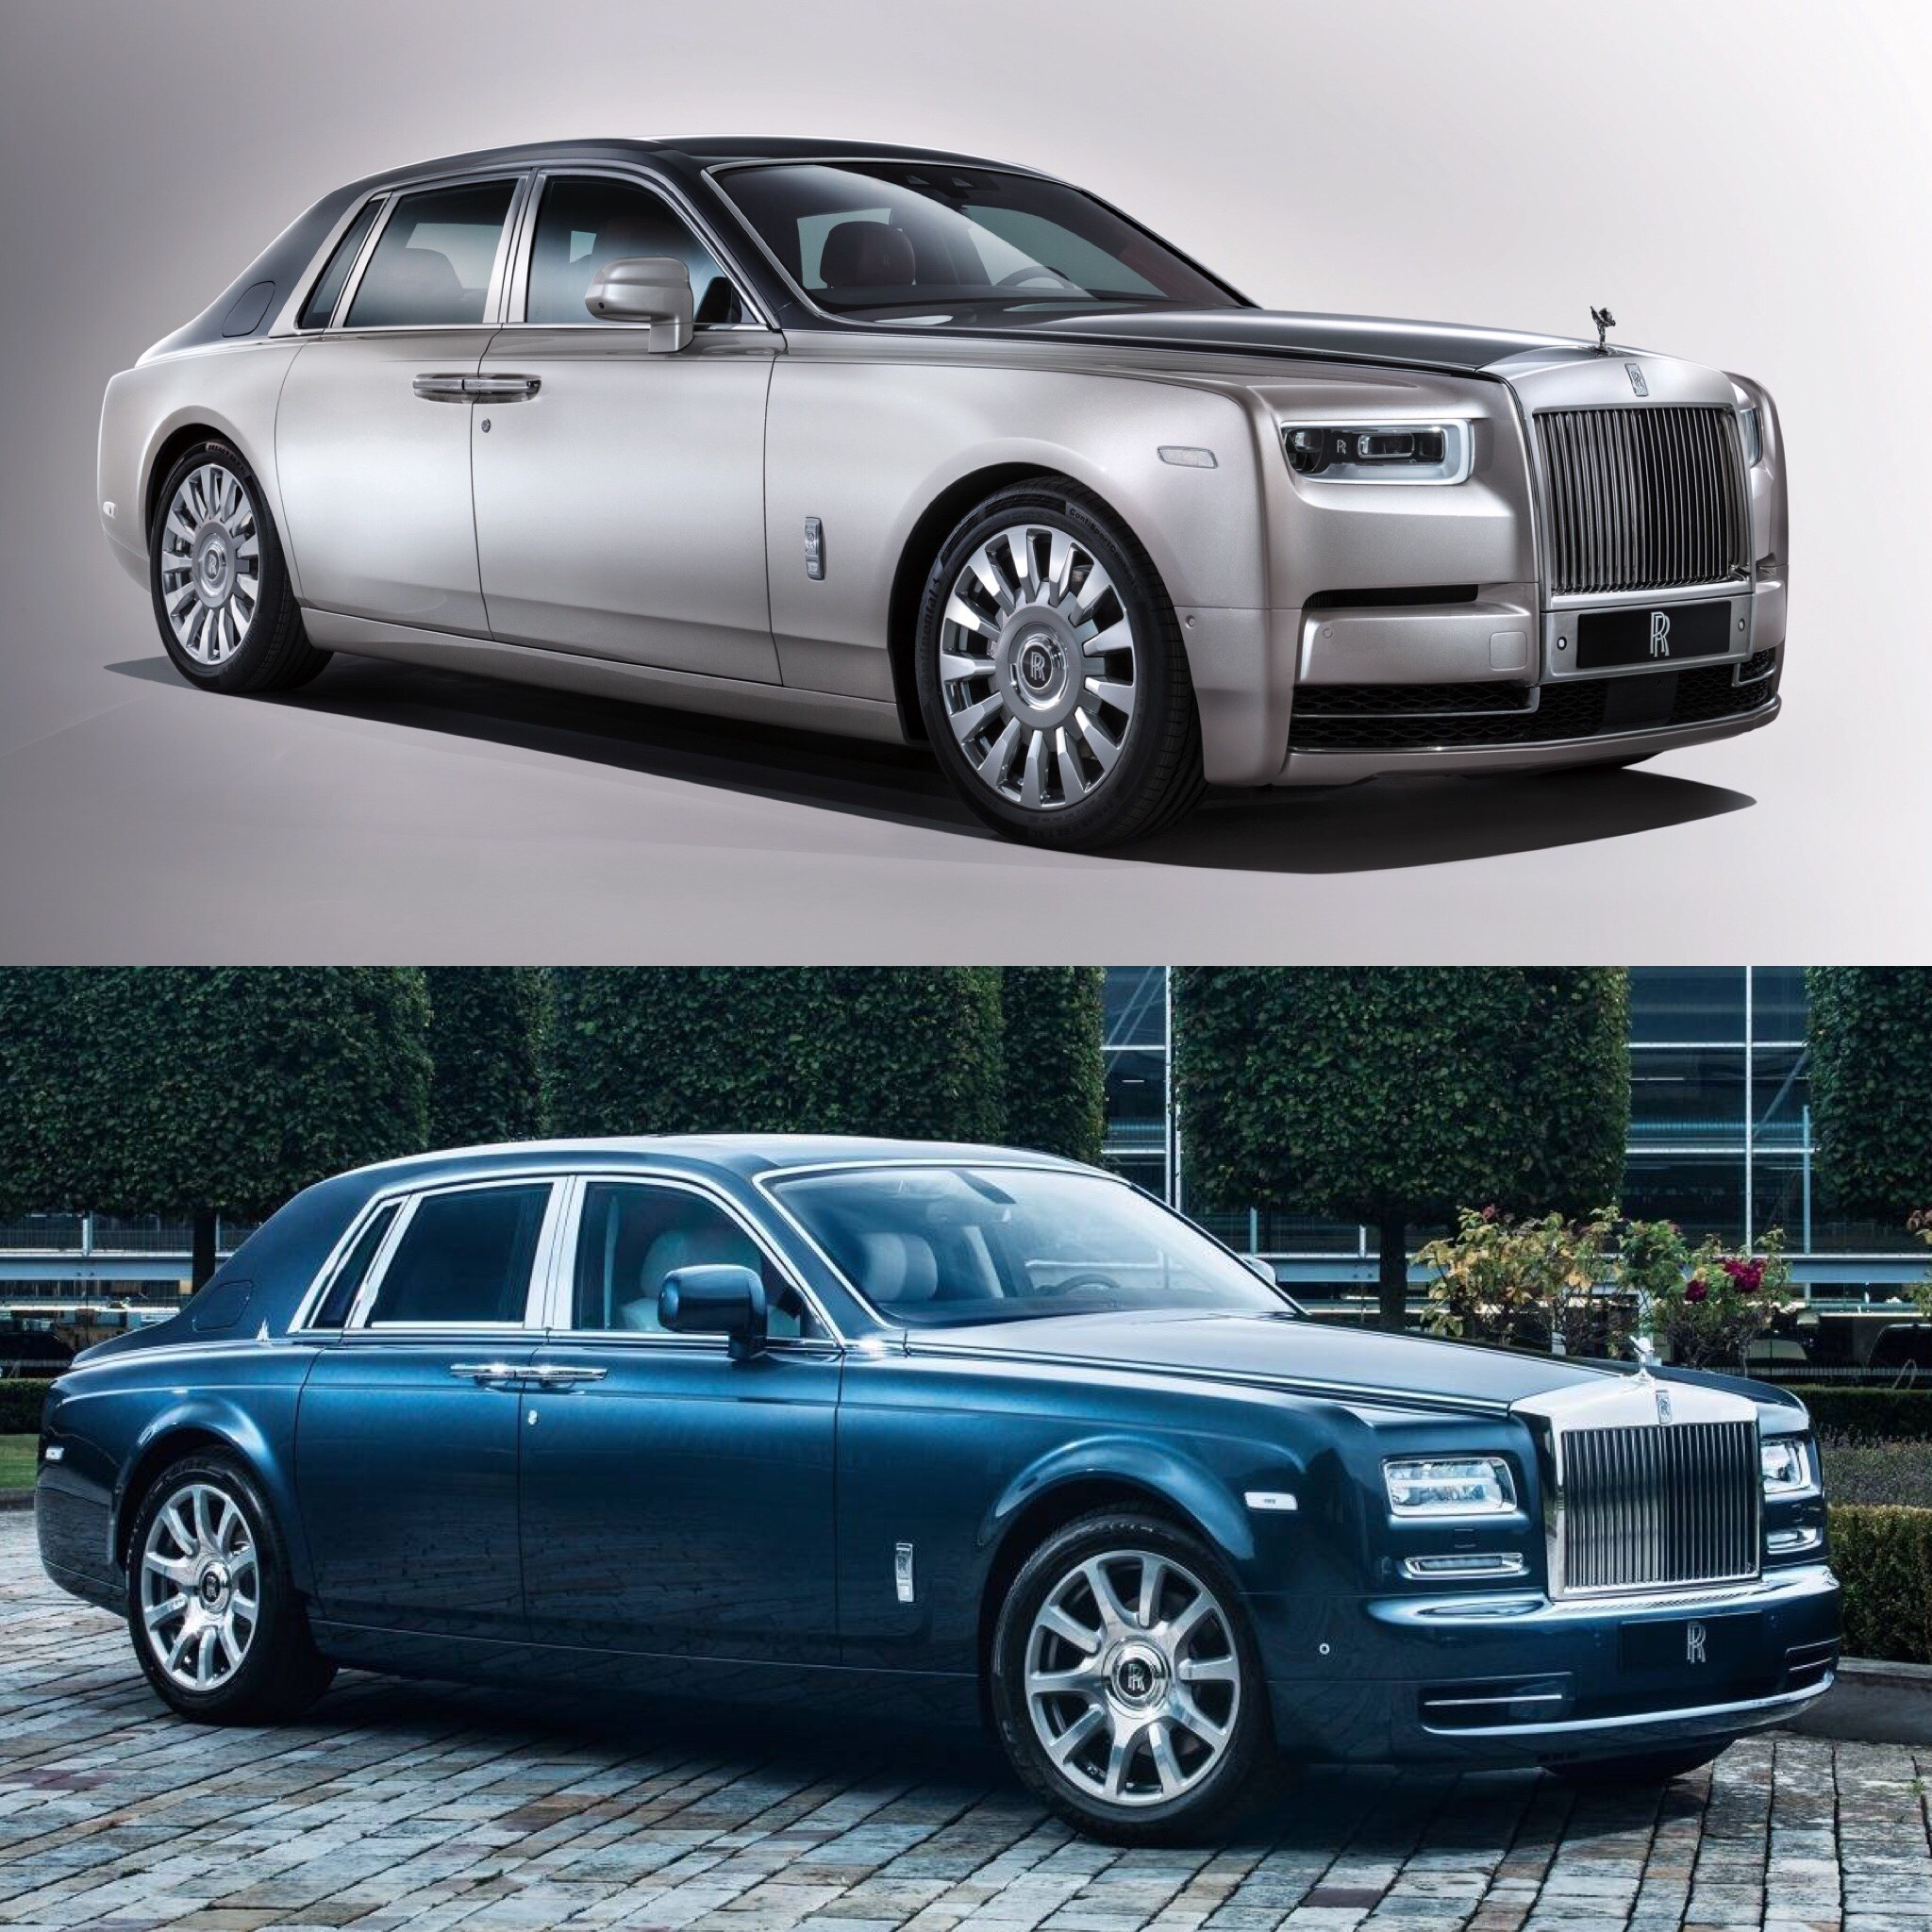 Photo Comparison Rolls Royce Phantom Viii Vs Rolls Royce